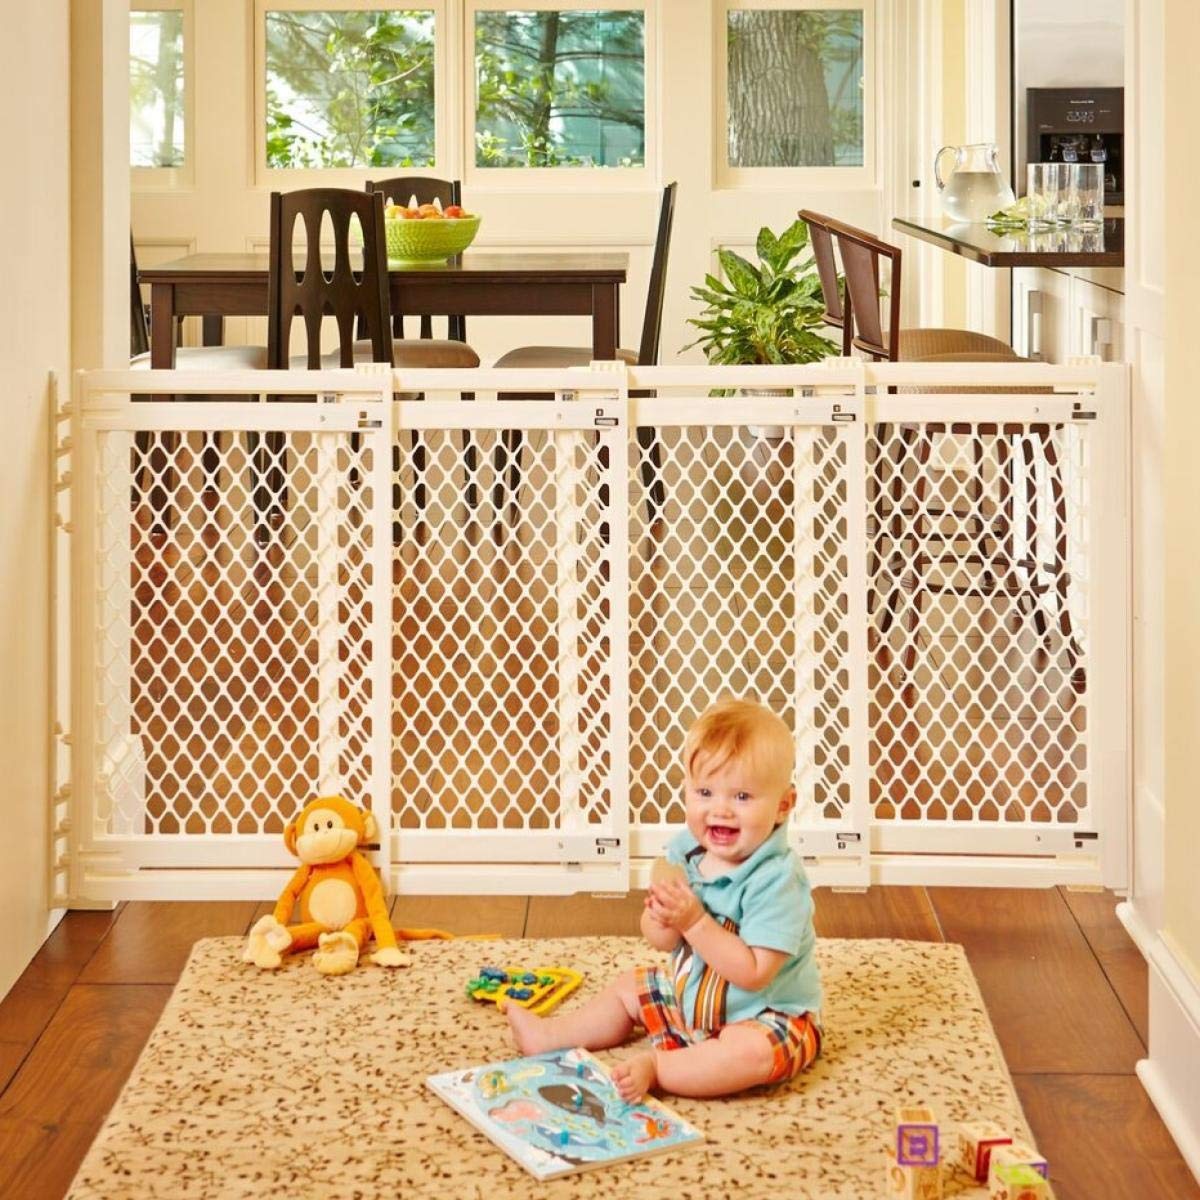 North States 62'' Wide Extra-Wide Baby Gate: Smoothly Opens and Closes in Extra-Wide Spaces. Hardware Mount. Fits 22''-62'' Wide (31'' Tall, Ivory) by North States